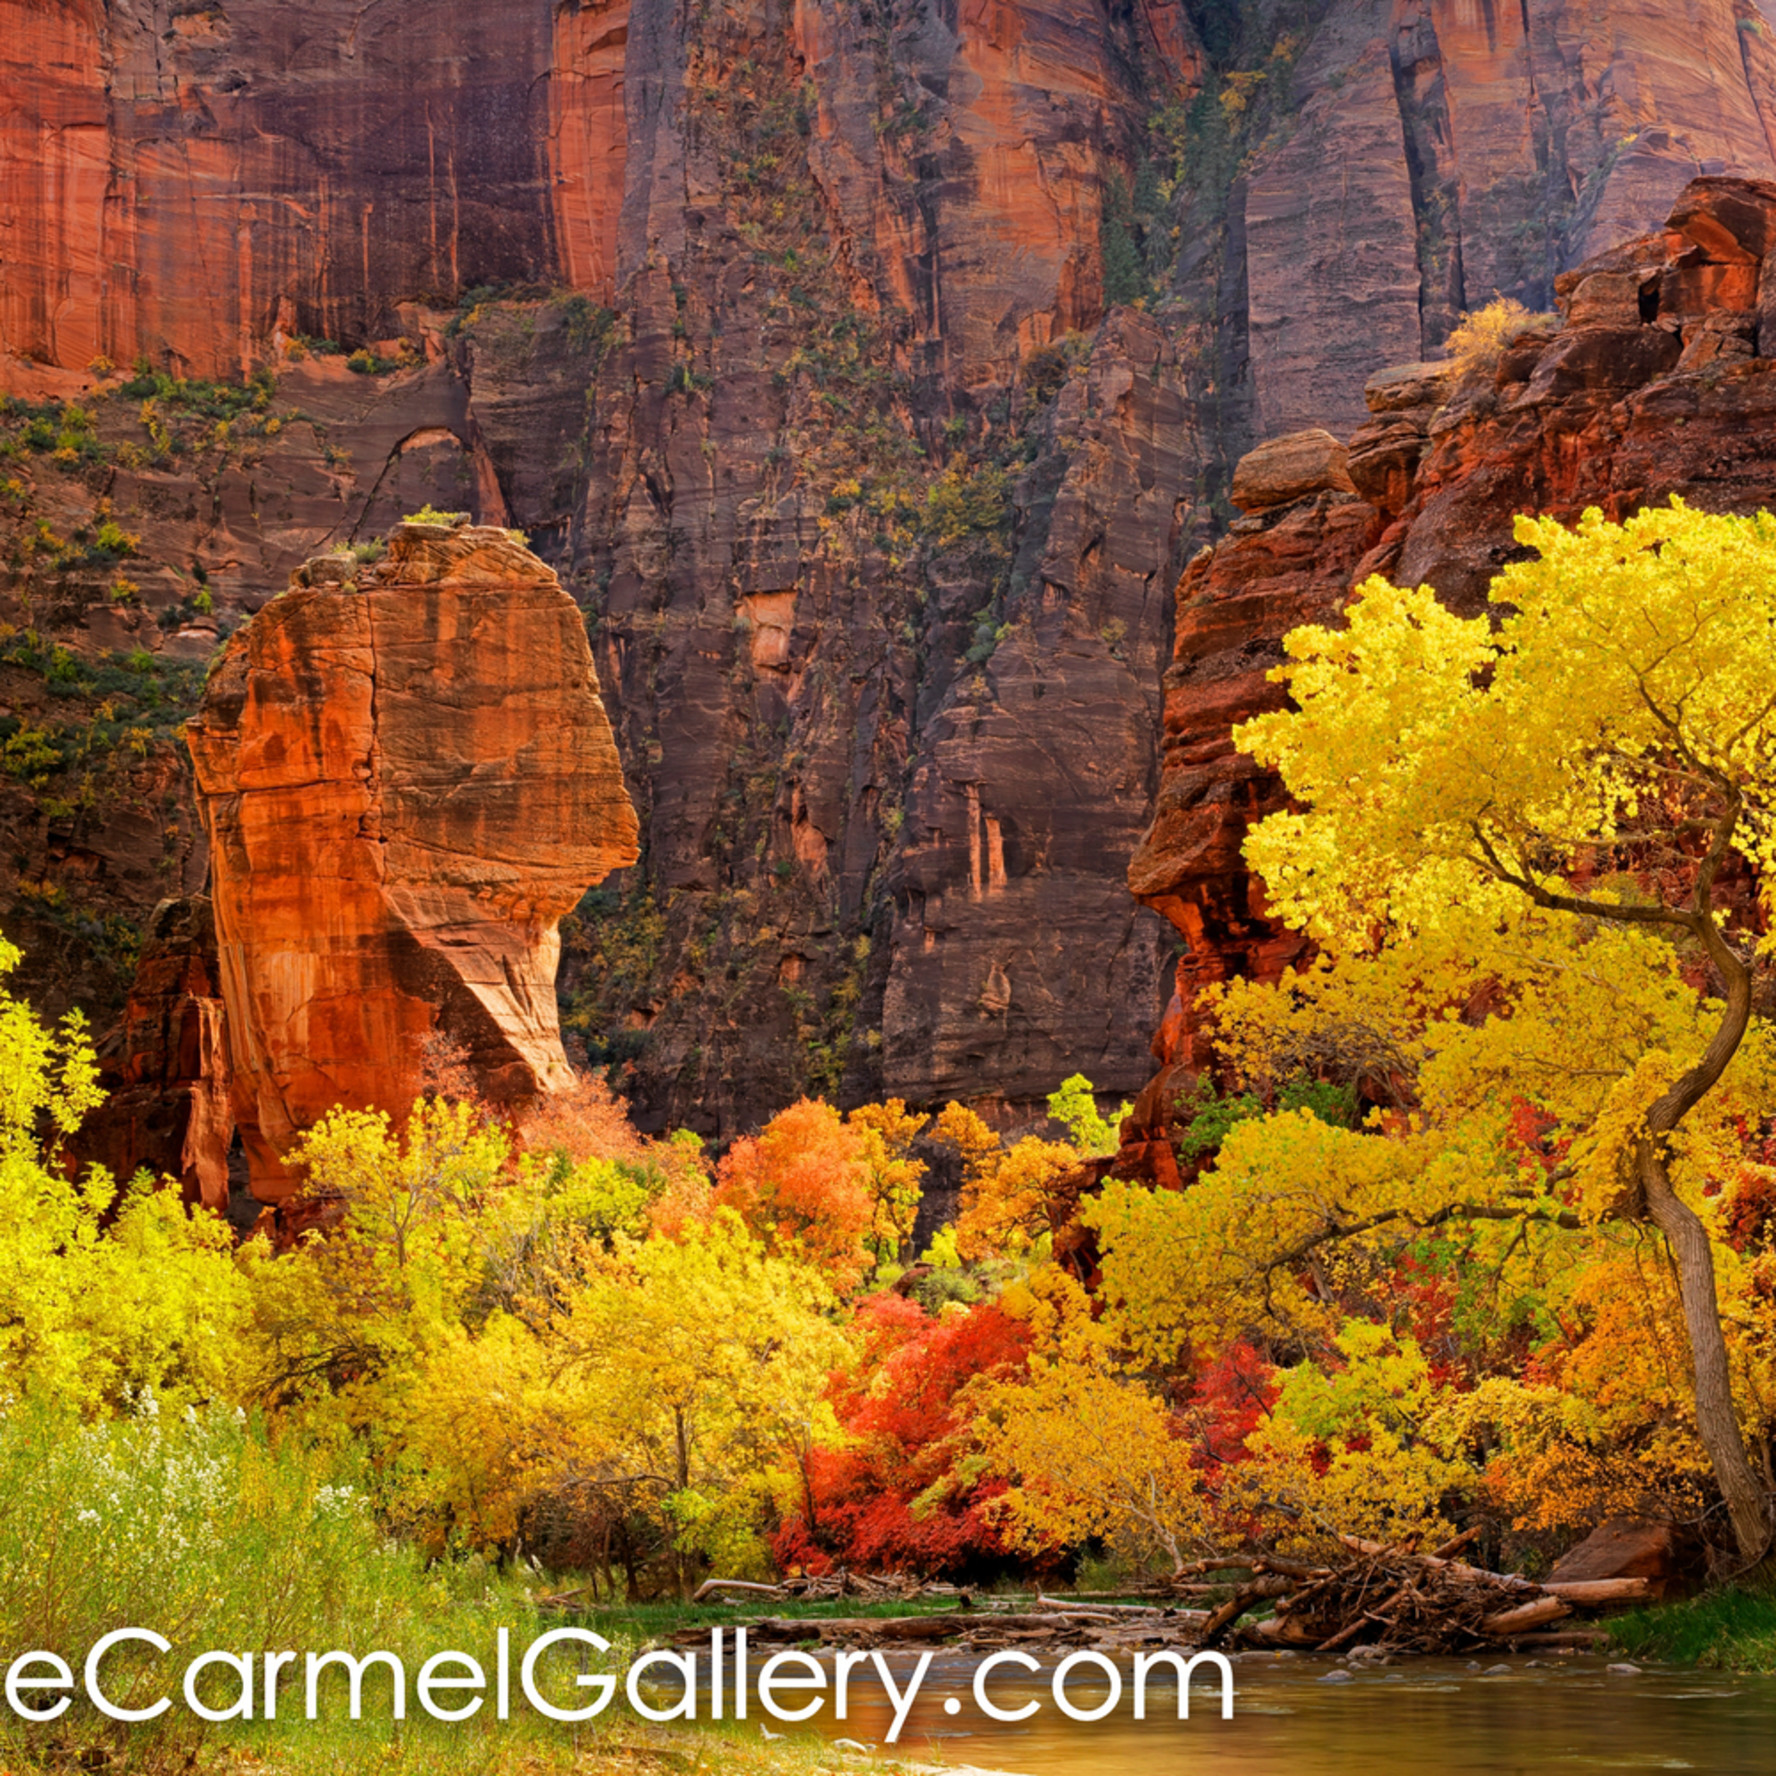 Autumn in zion canyon ulvt4o